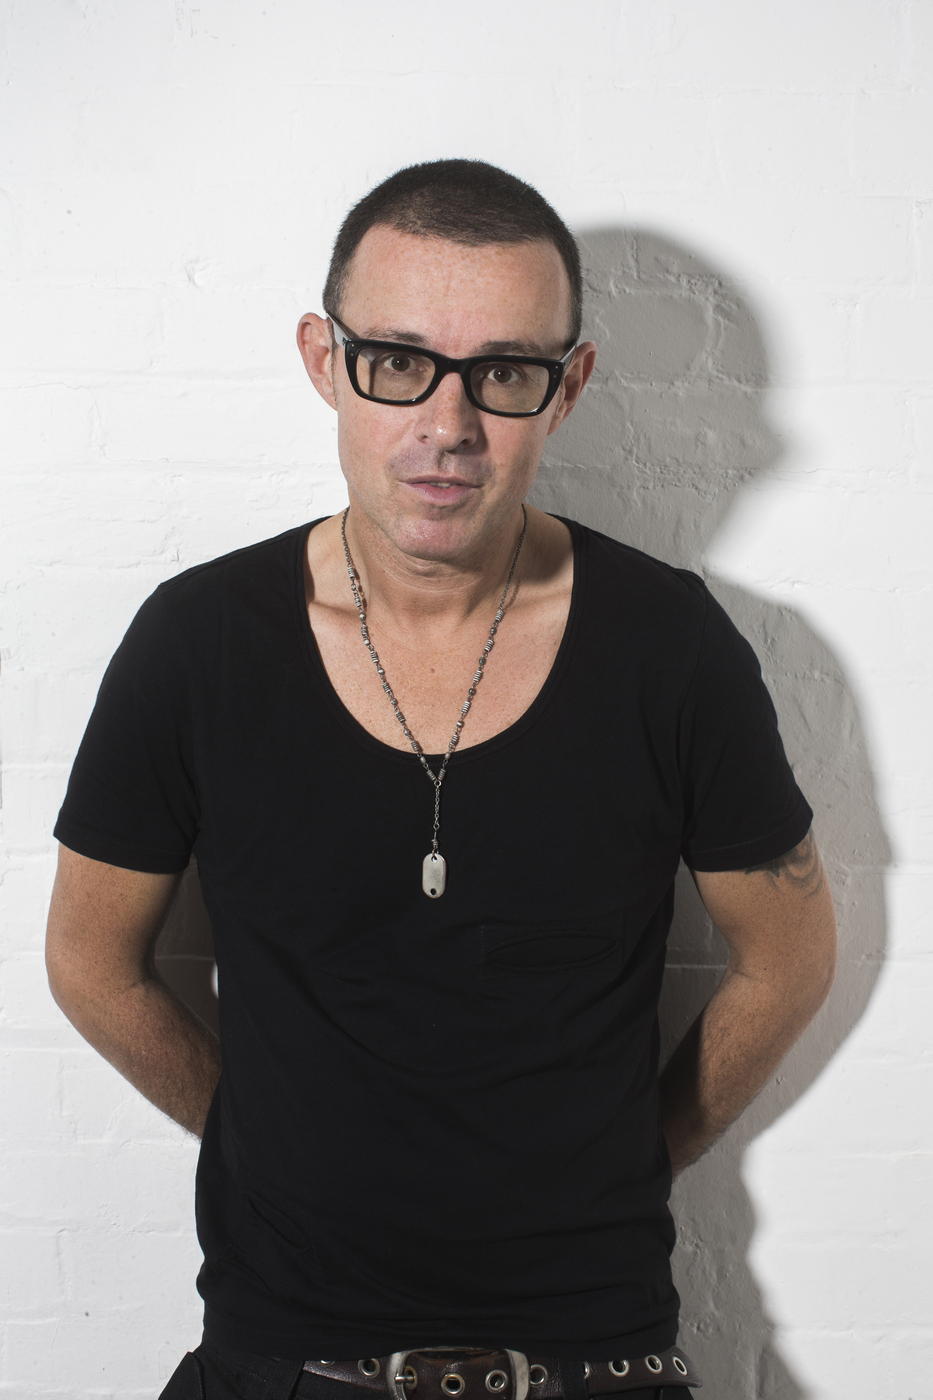 JUDGE JULES PRESENTS THE GLOBAL WARM UP EPISODE 508 MP3